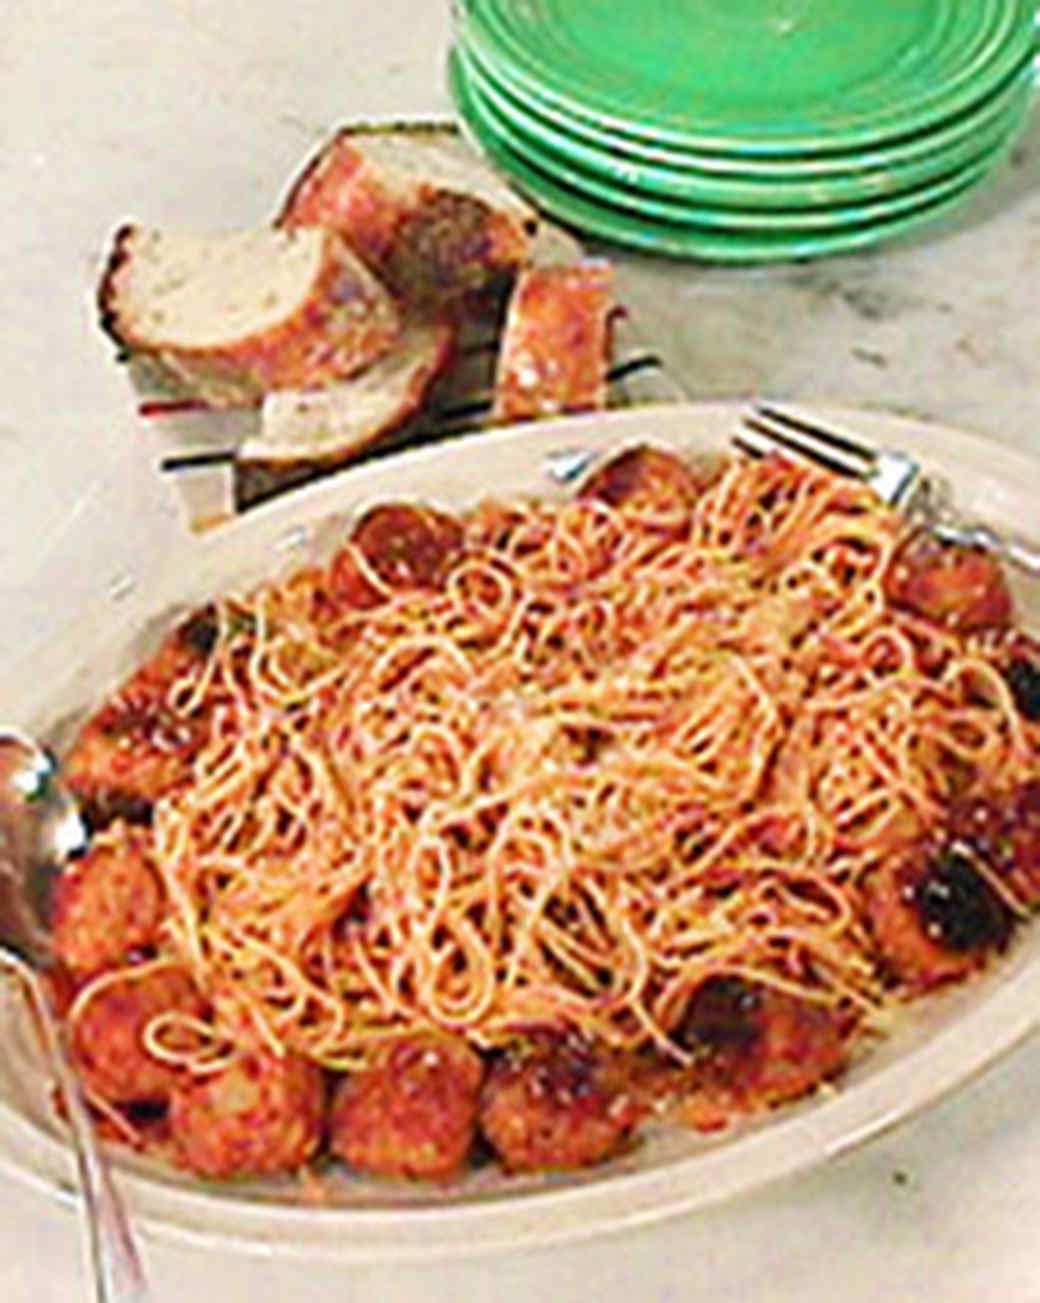 Spaghetti and Meatballs with Mark